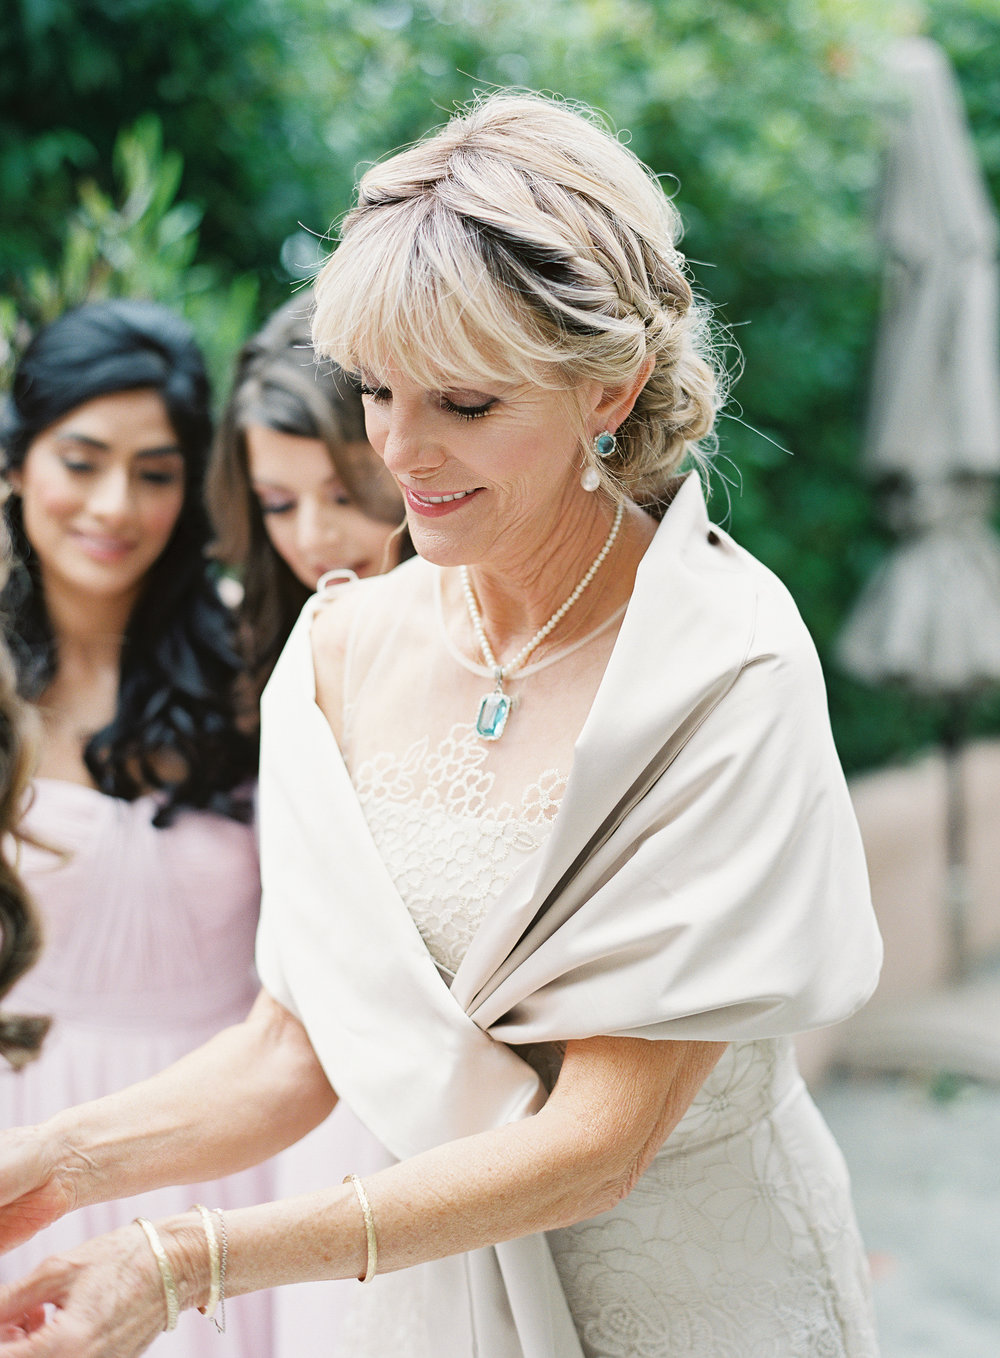 Meghan Mehan Photography | Fine Art Film Wedding Photographer | California | San Francisco | Napa | Sonoma | Santa Barbara | Big Sur | Destination Wedding Photographer 009.jpg